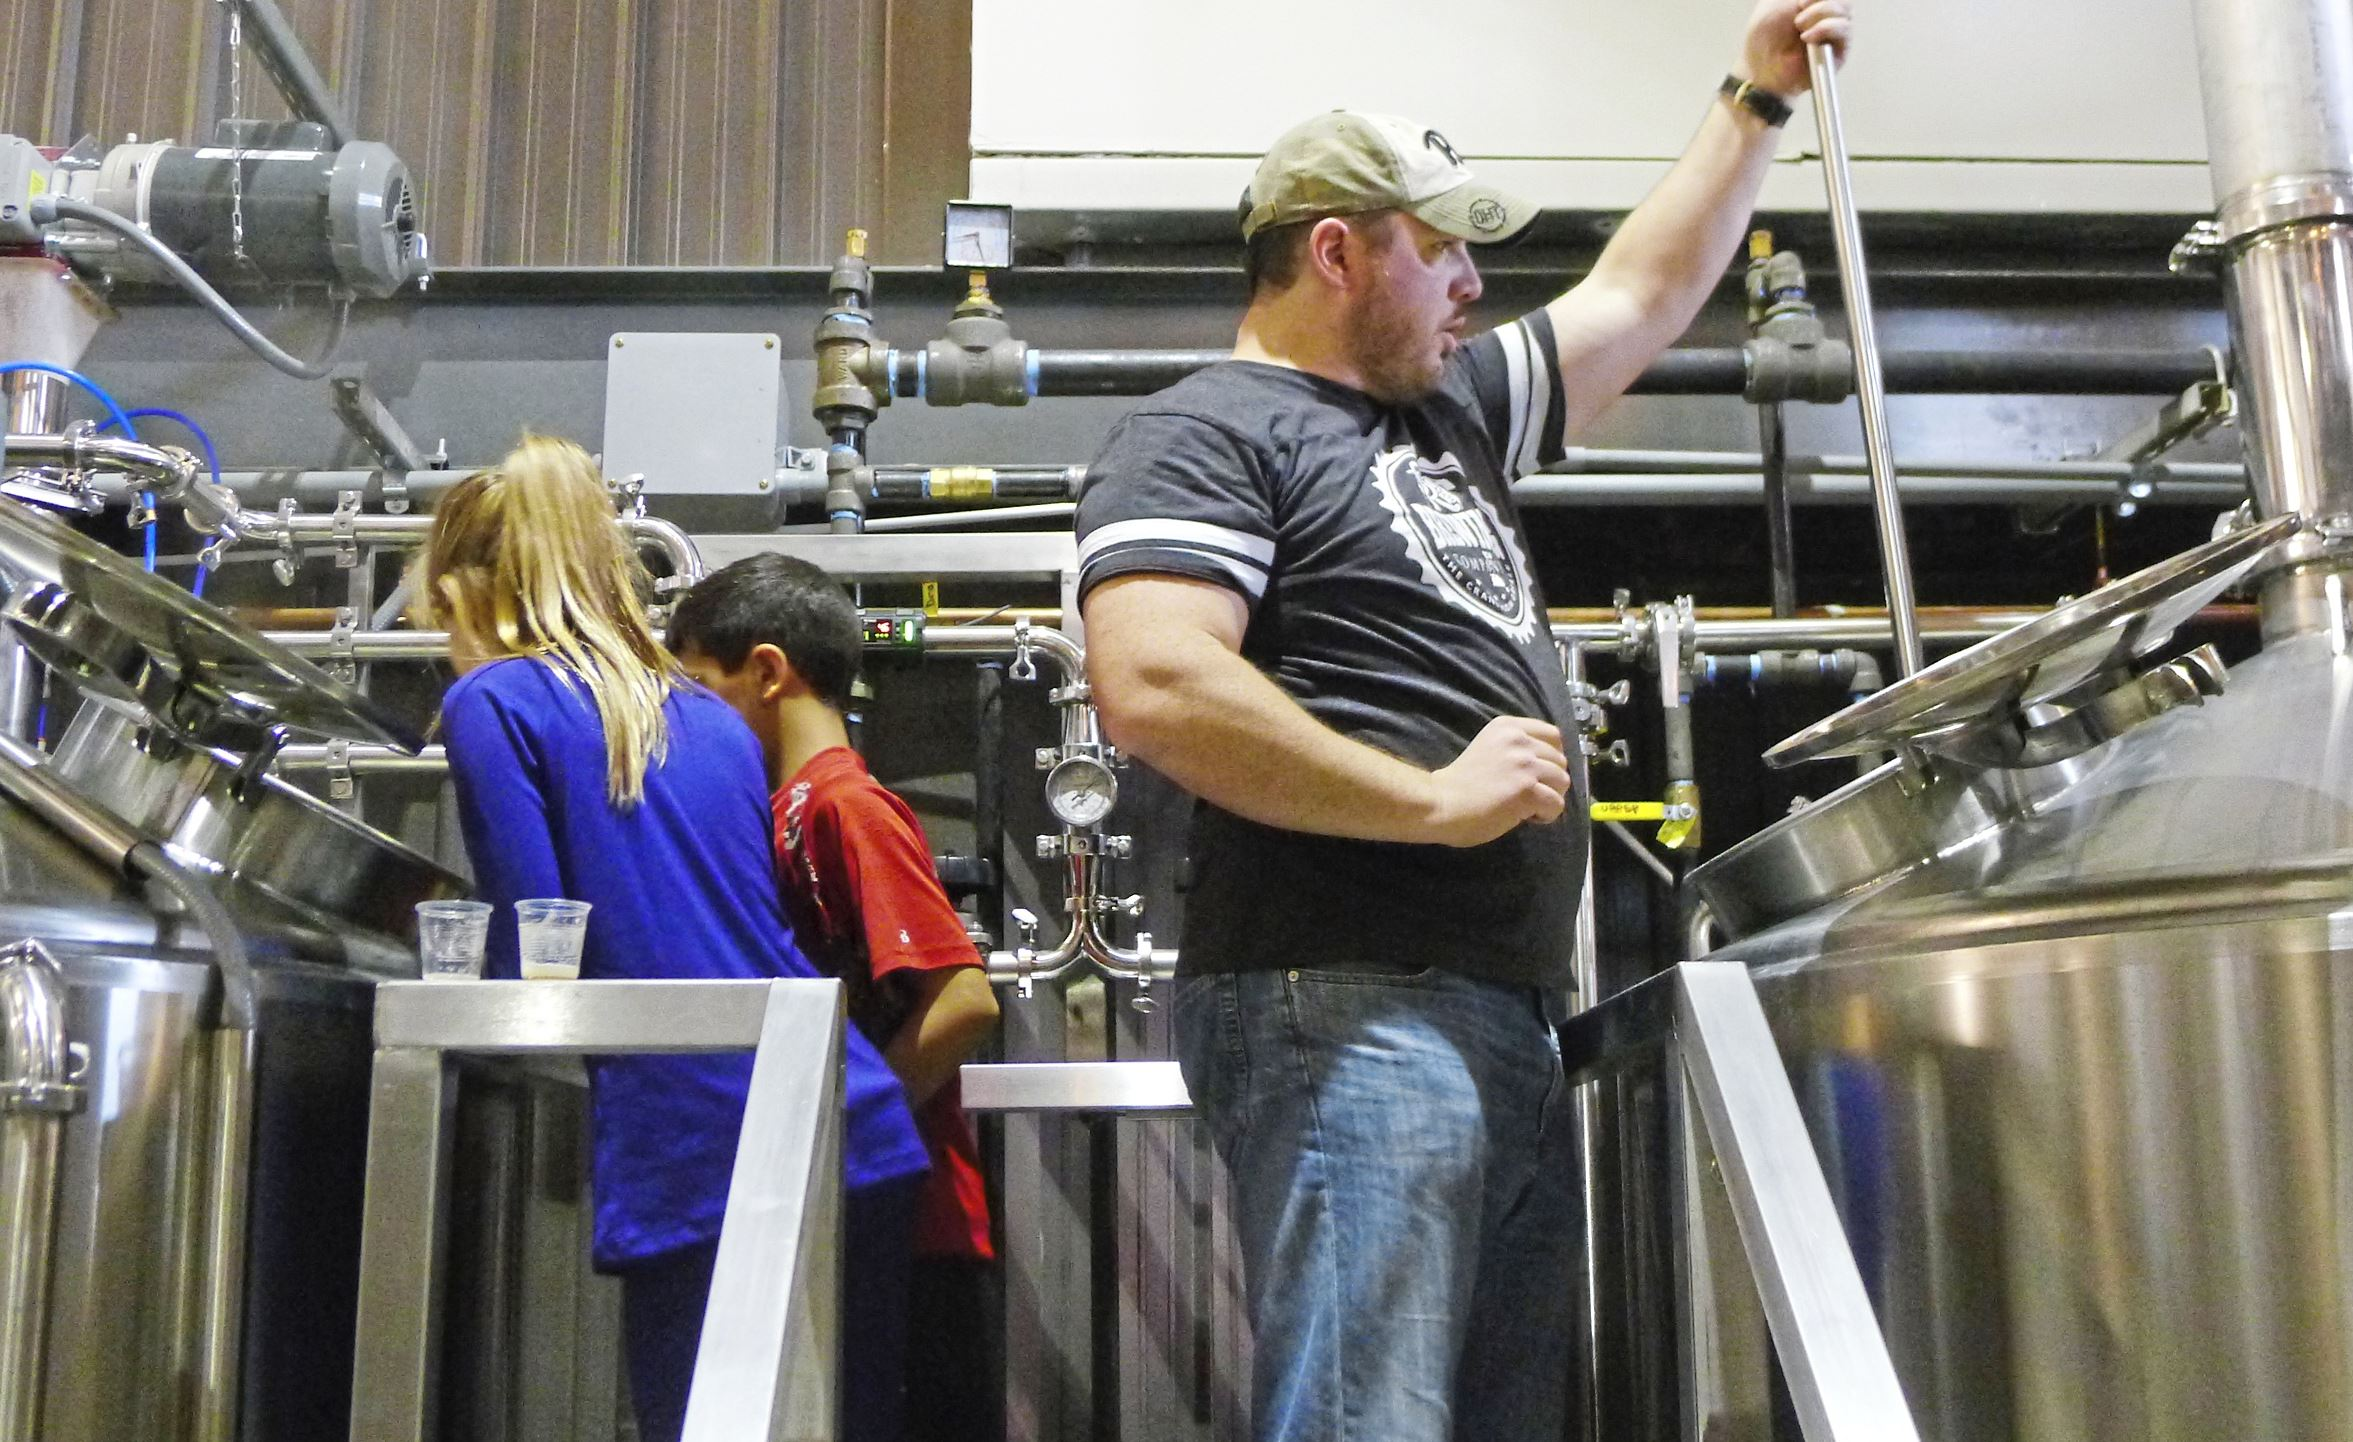 CR BREWING 3-2 With a niece and nephew helping, brewer Bryan McDowell works on one of the first batches of beer in the brewhouse at the new CR Brewing Co. in Neshannock, Pa., near New Castle.